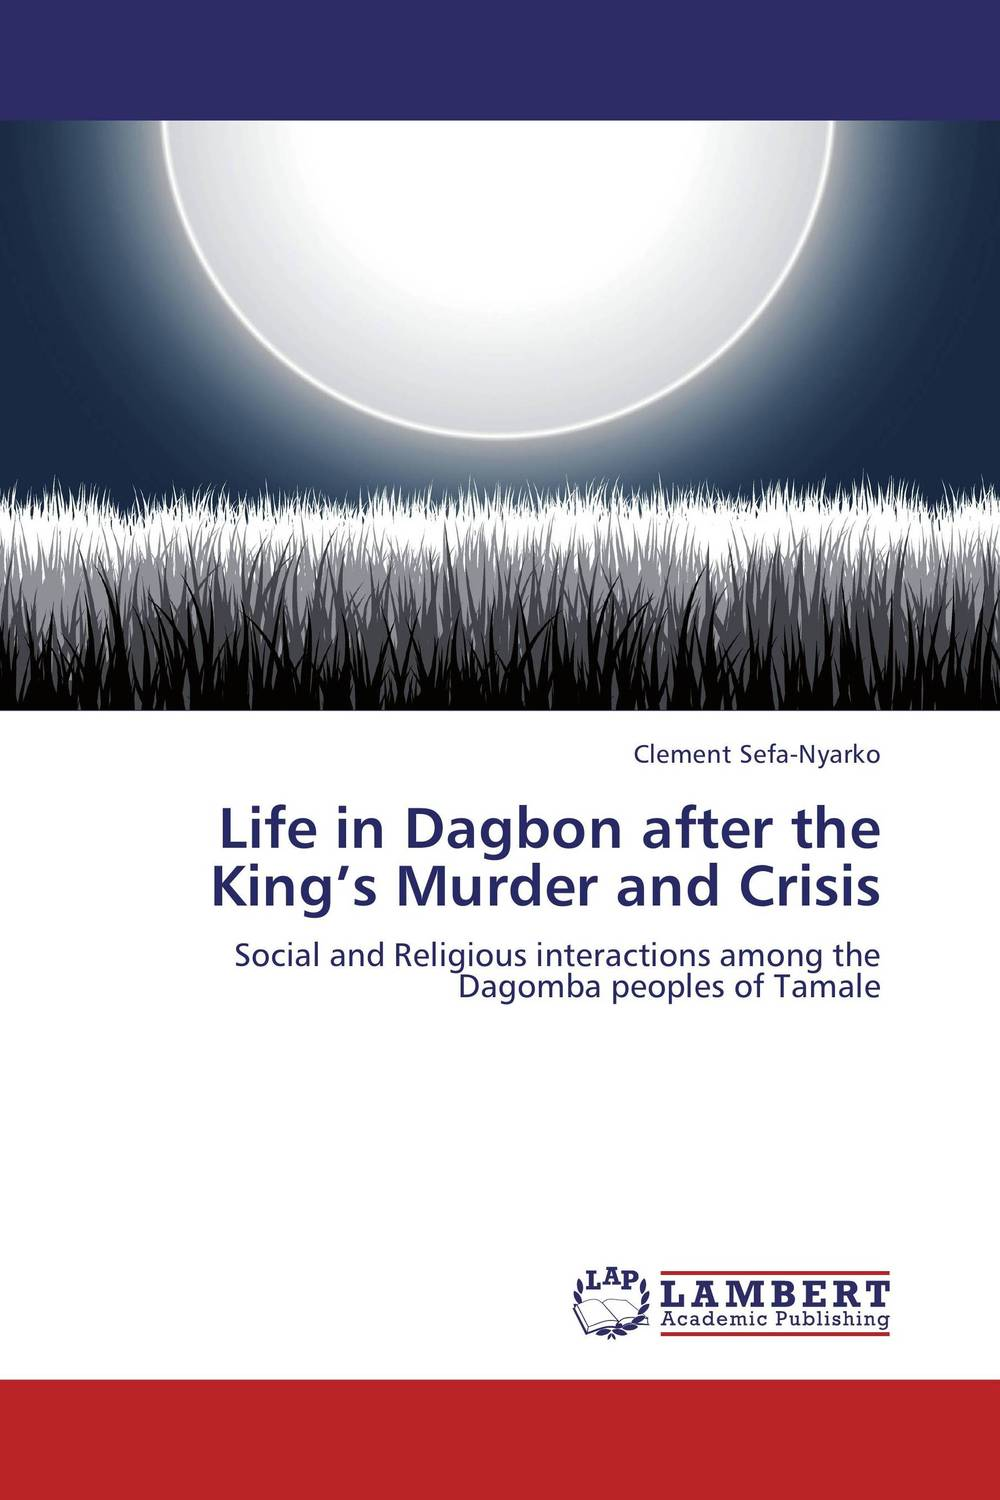 Life in Dagbon after the King's Murder and Crisis donovan conflict and crisis cloth